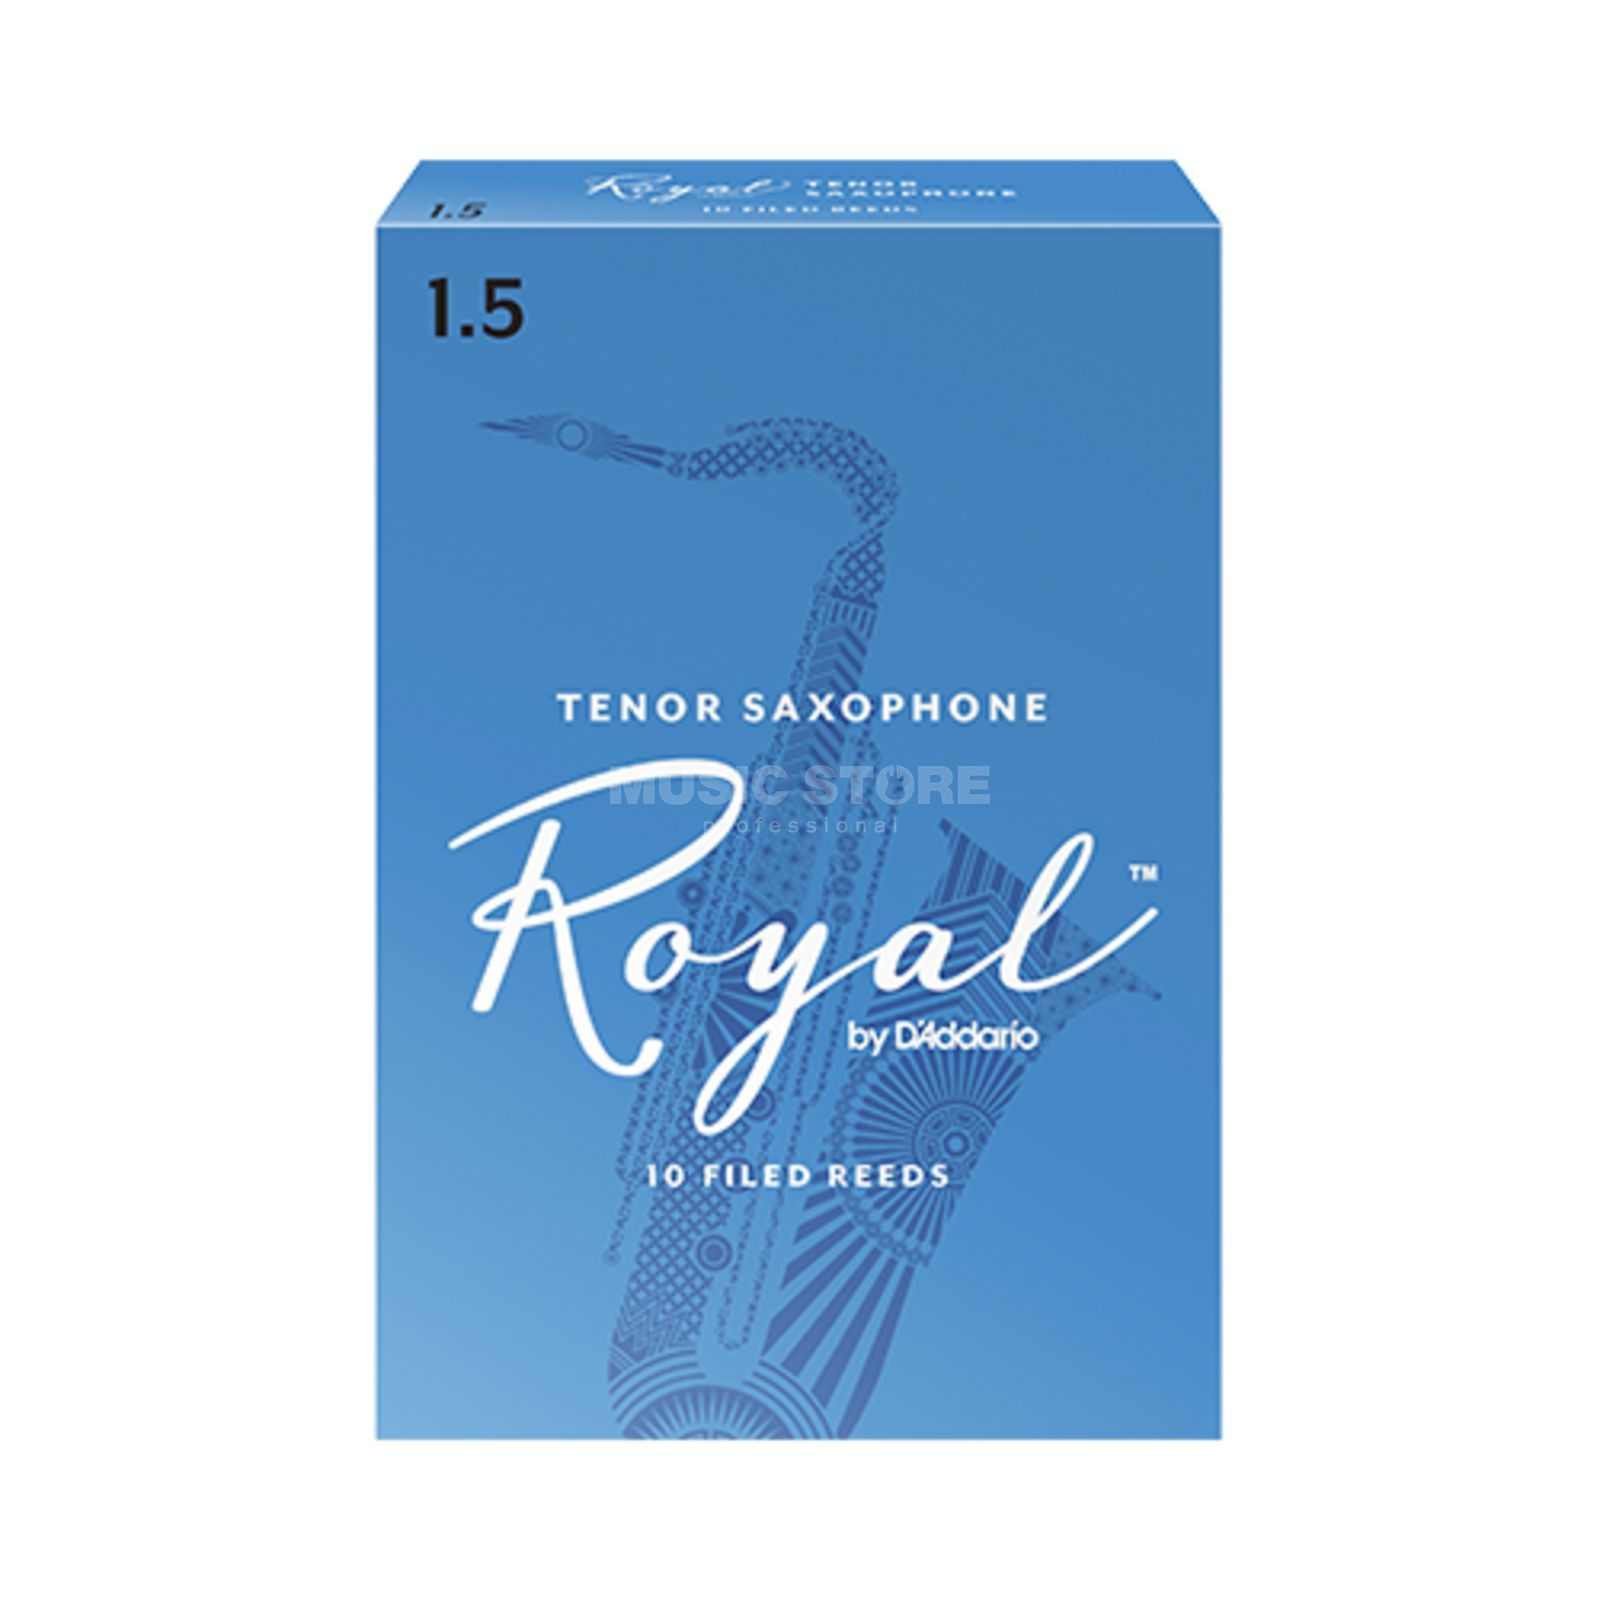 D'Addario Woodwinds Rico Royal 1.5 Tenor Saxophone Reeds Box of 10 Product Image